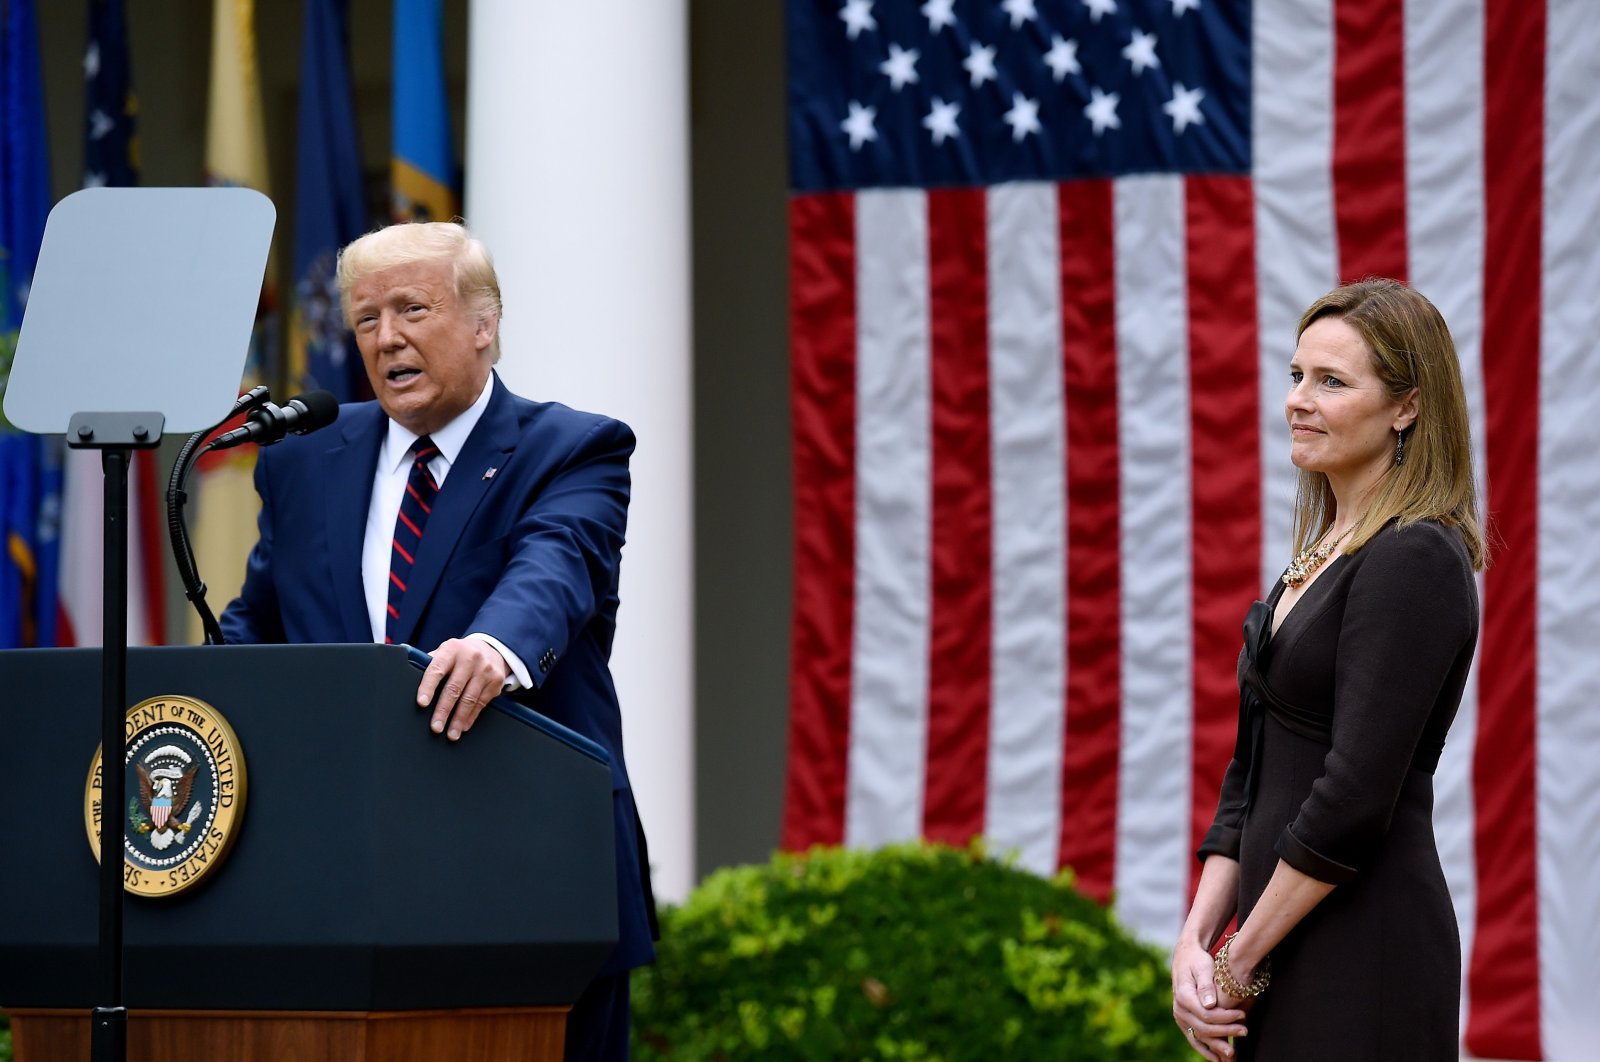 U.S. President Donald Trump speaks next to Judge Amy Coney Barrett at the Rose Garden of the White House, Washington, D.C., Sept. 26, 2020. (AFP Photo)